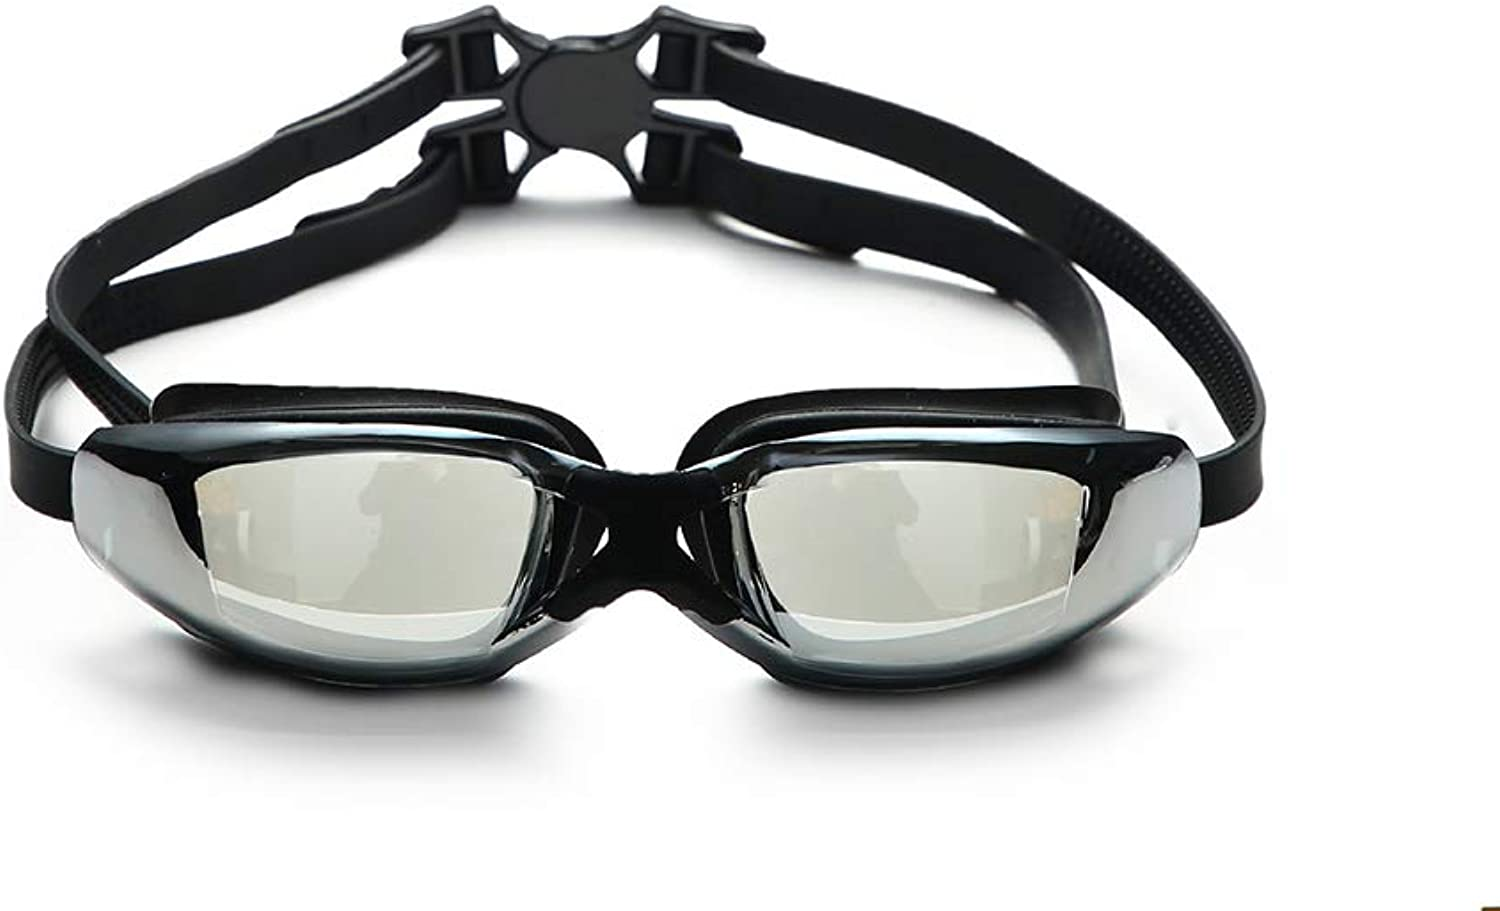 Swimming Goggles,Professional, Competition Goggles Anti Fog with Uv Predection No Leaking for Adults Men Women